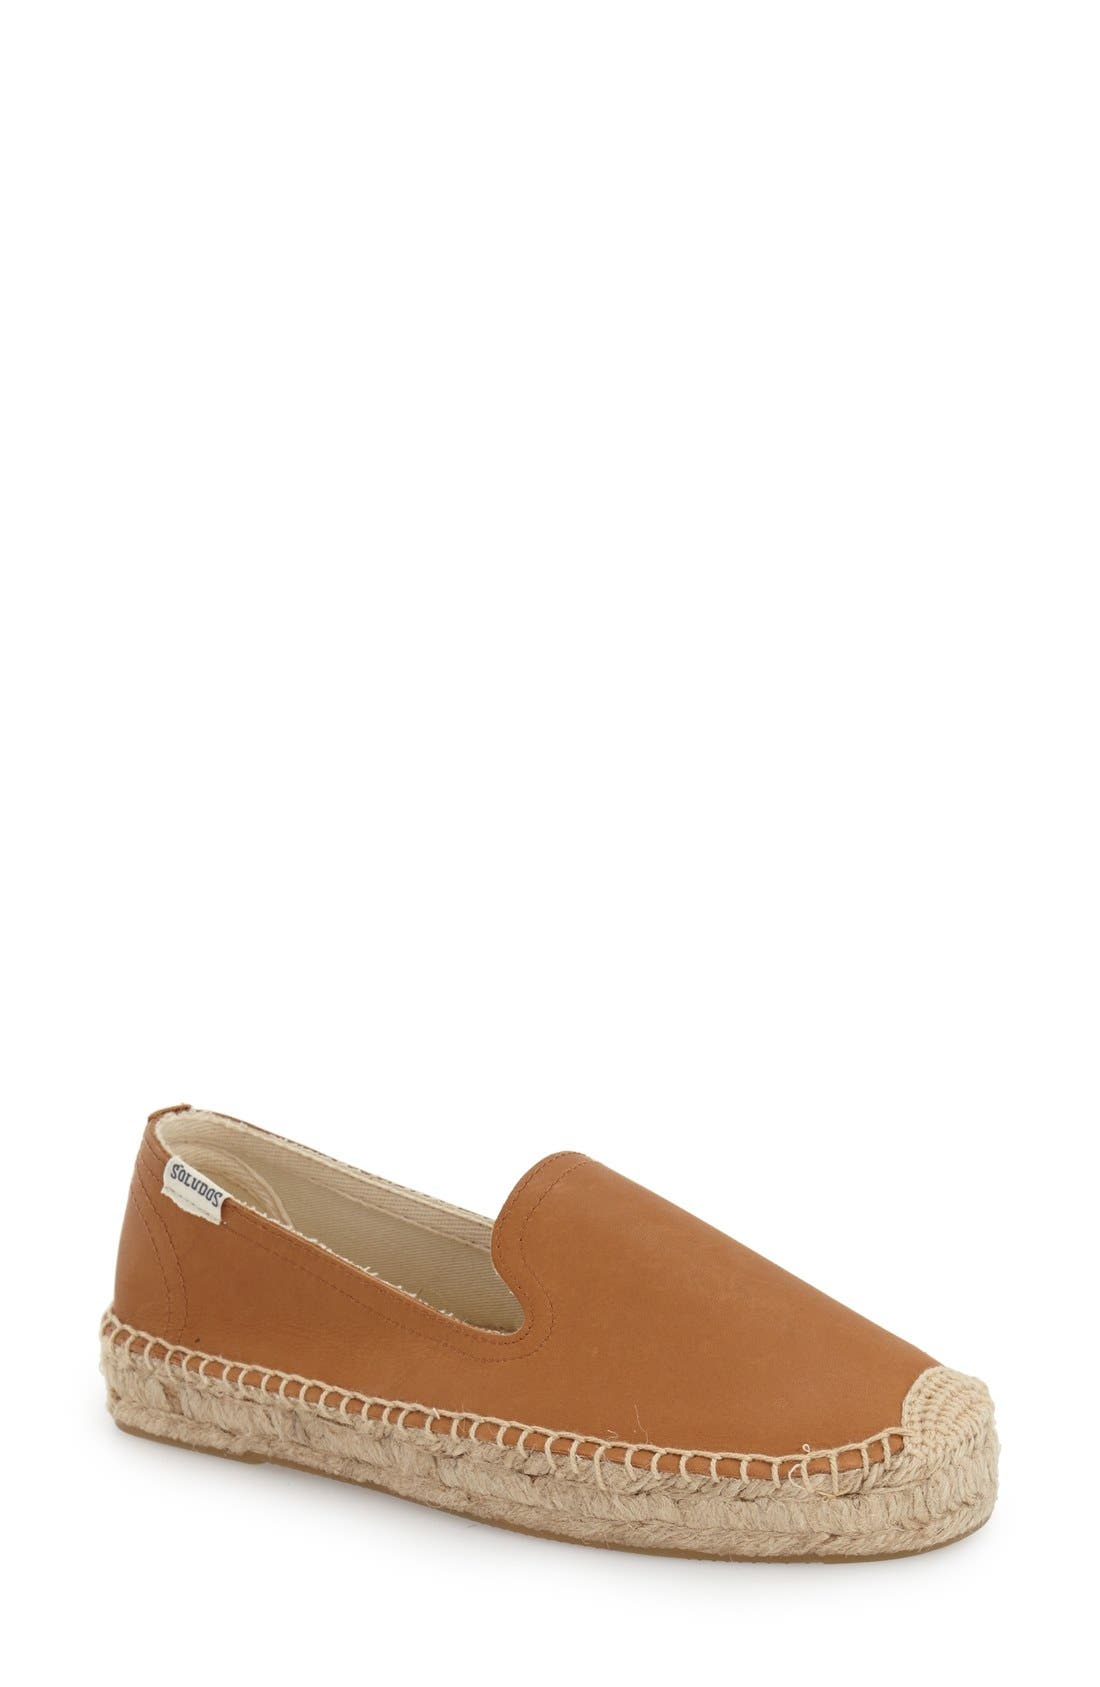 'Smoking' Espadrille Platform Shoe,                         Main,                         color, TAN LEATHER